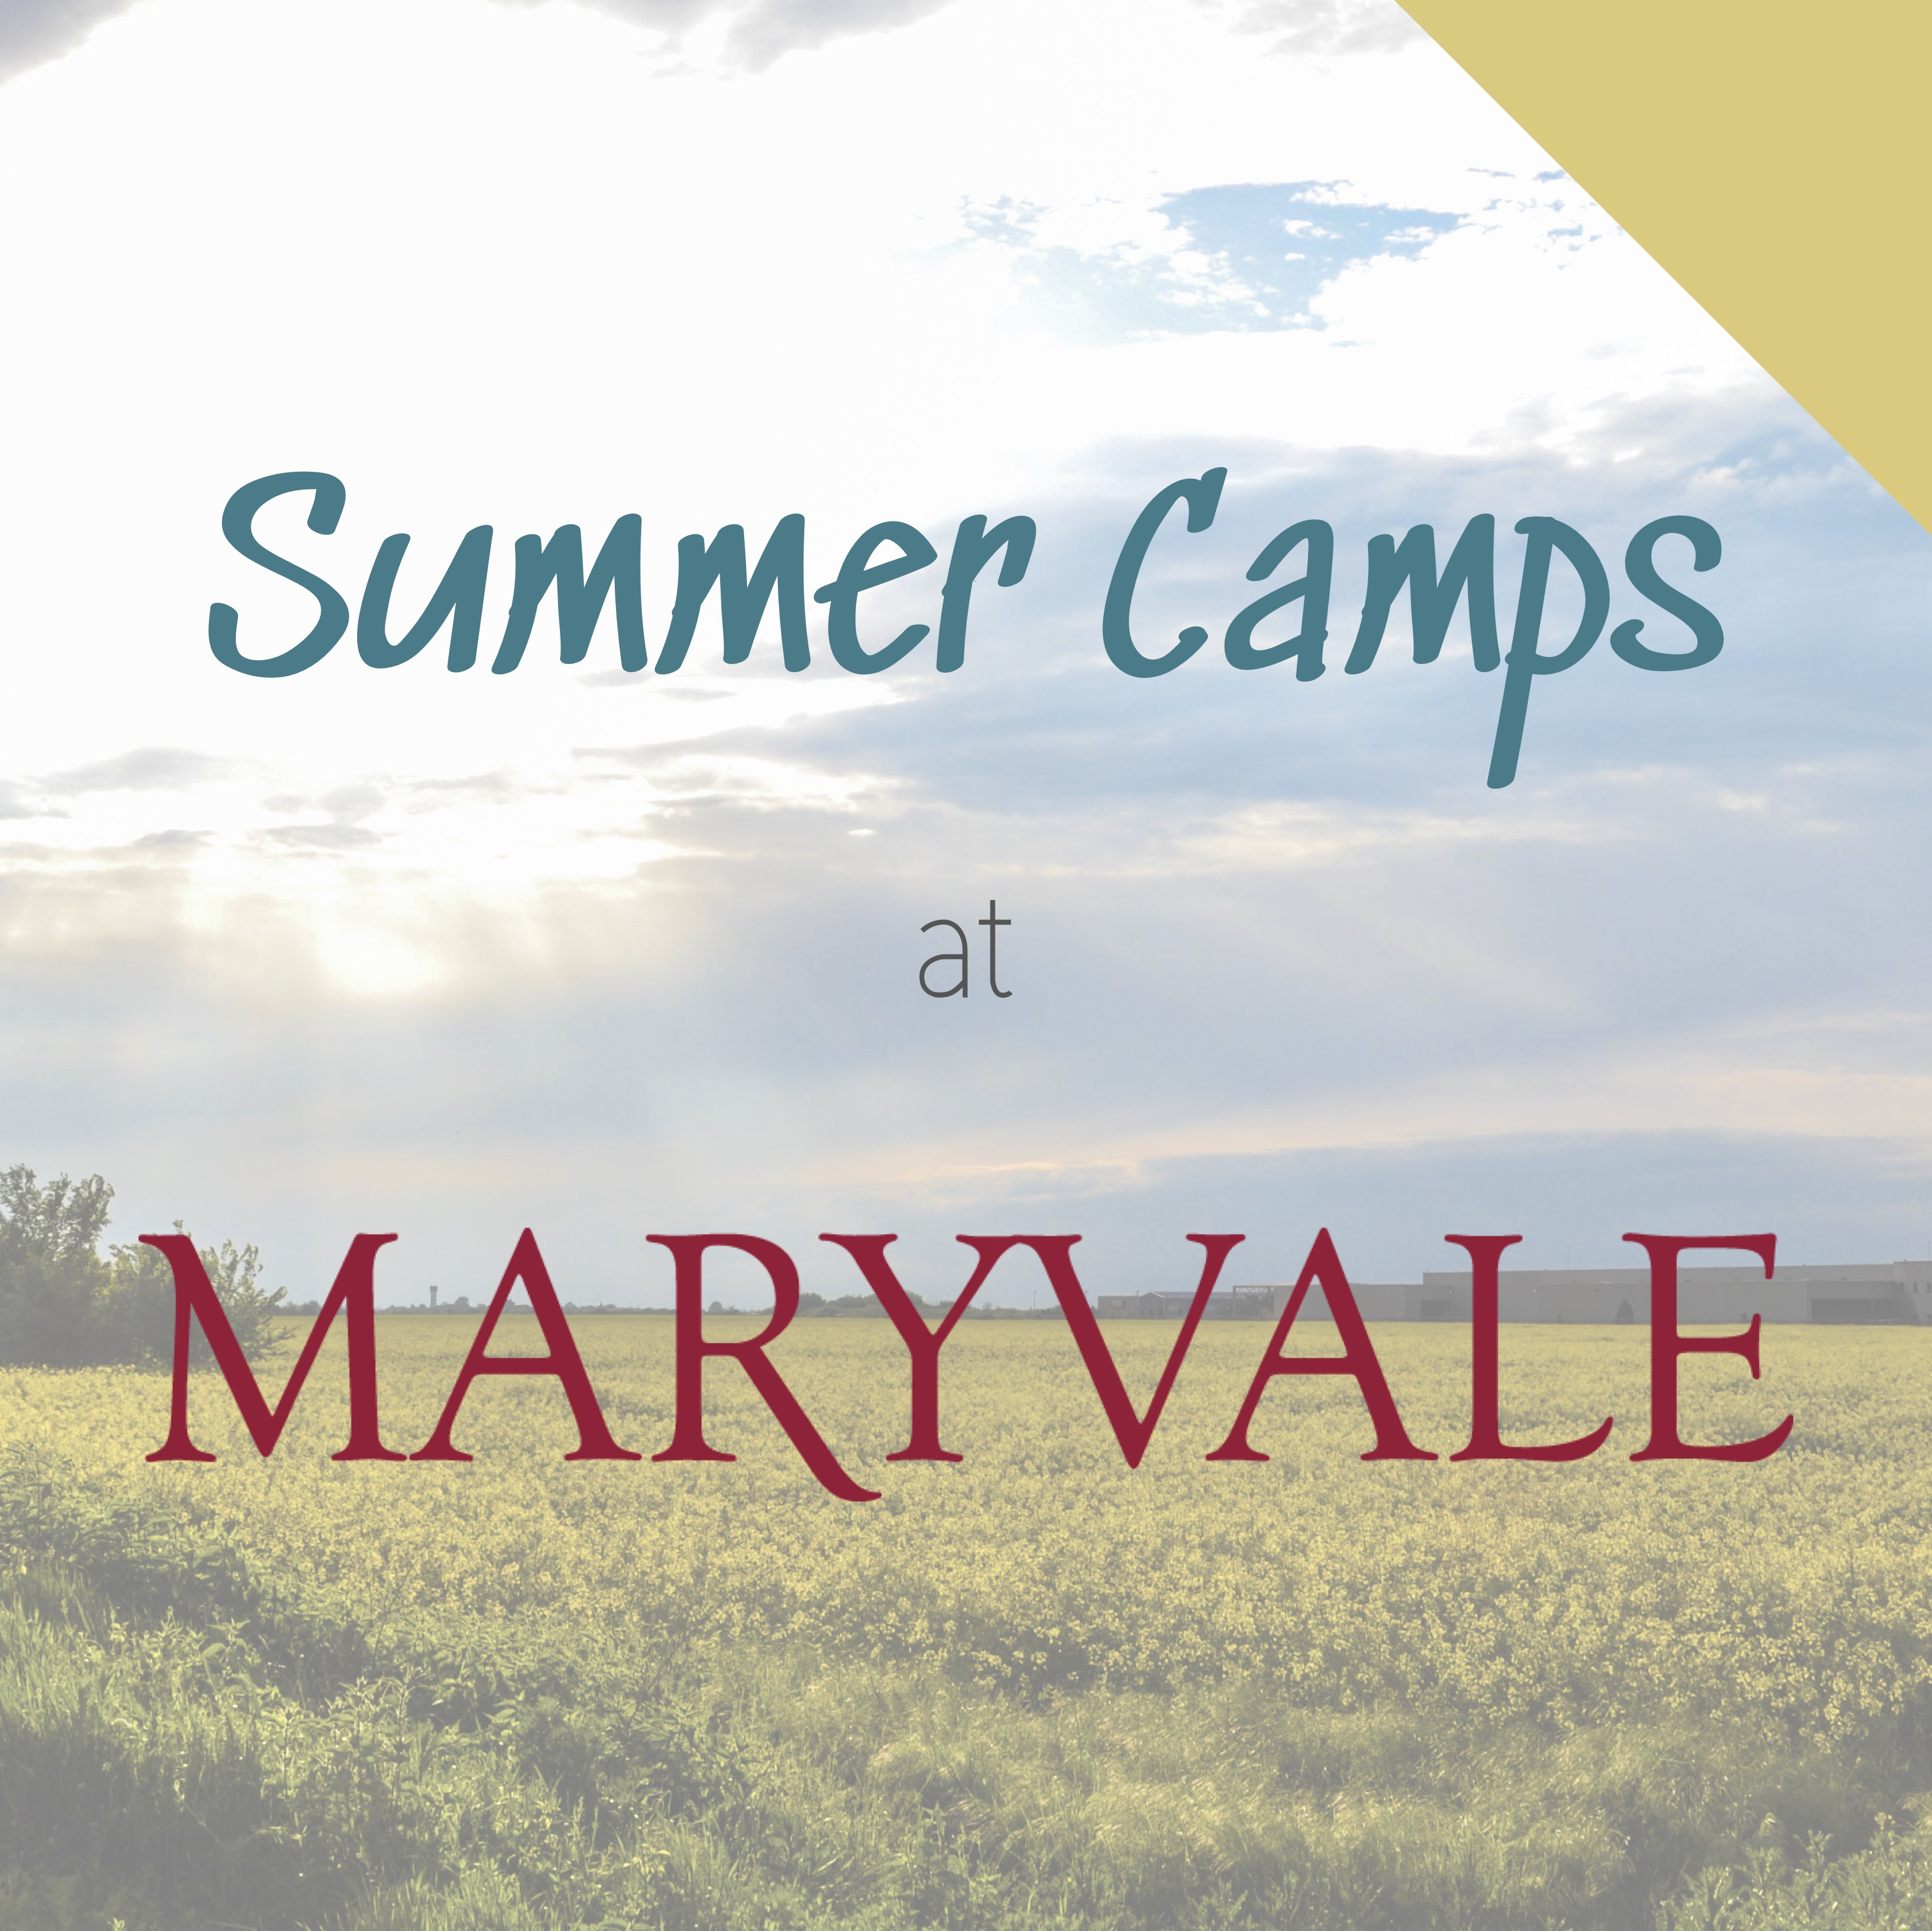 Summer Camps at Maryvale